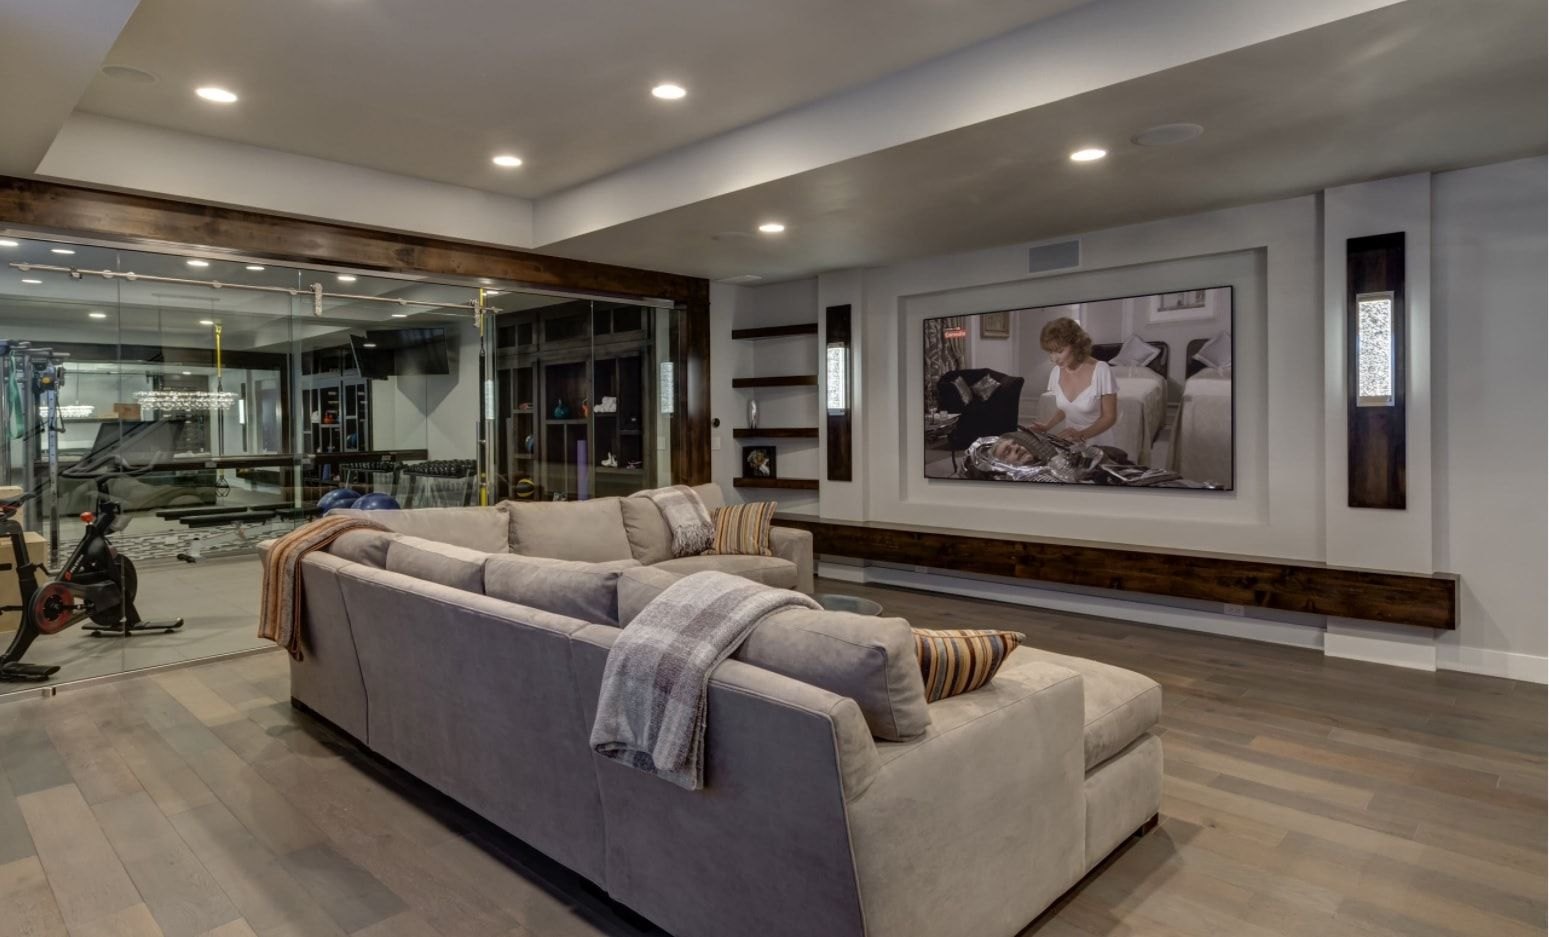 Futuristic home theater with light gray upholstered angular sofa